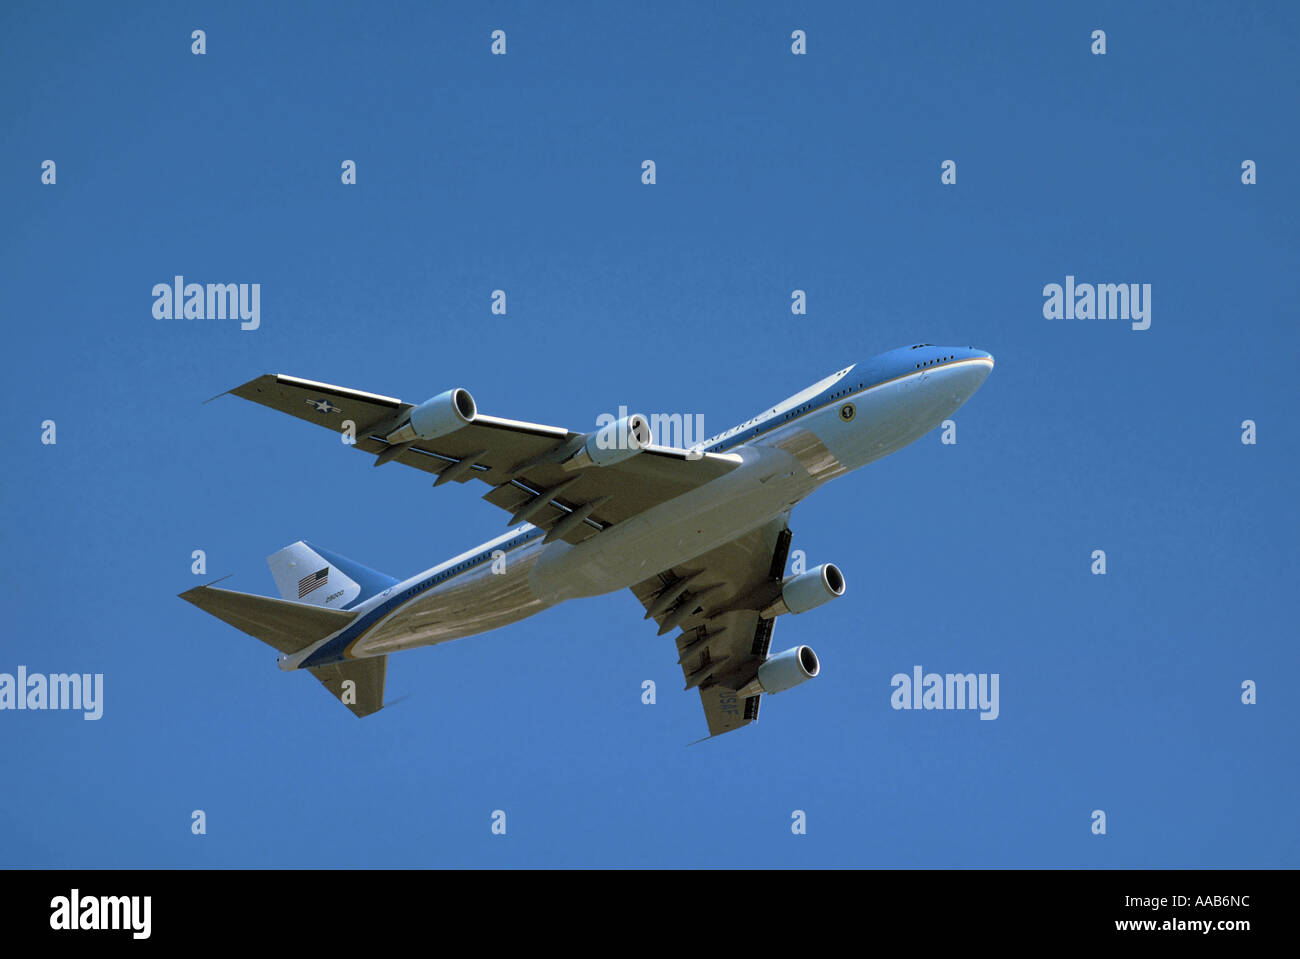 Air Force One climbing after takeoff from LAX, Los Angeles World Airport - Stock Image